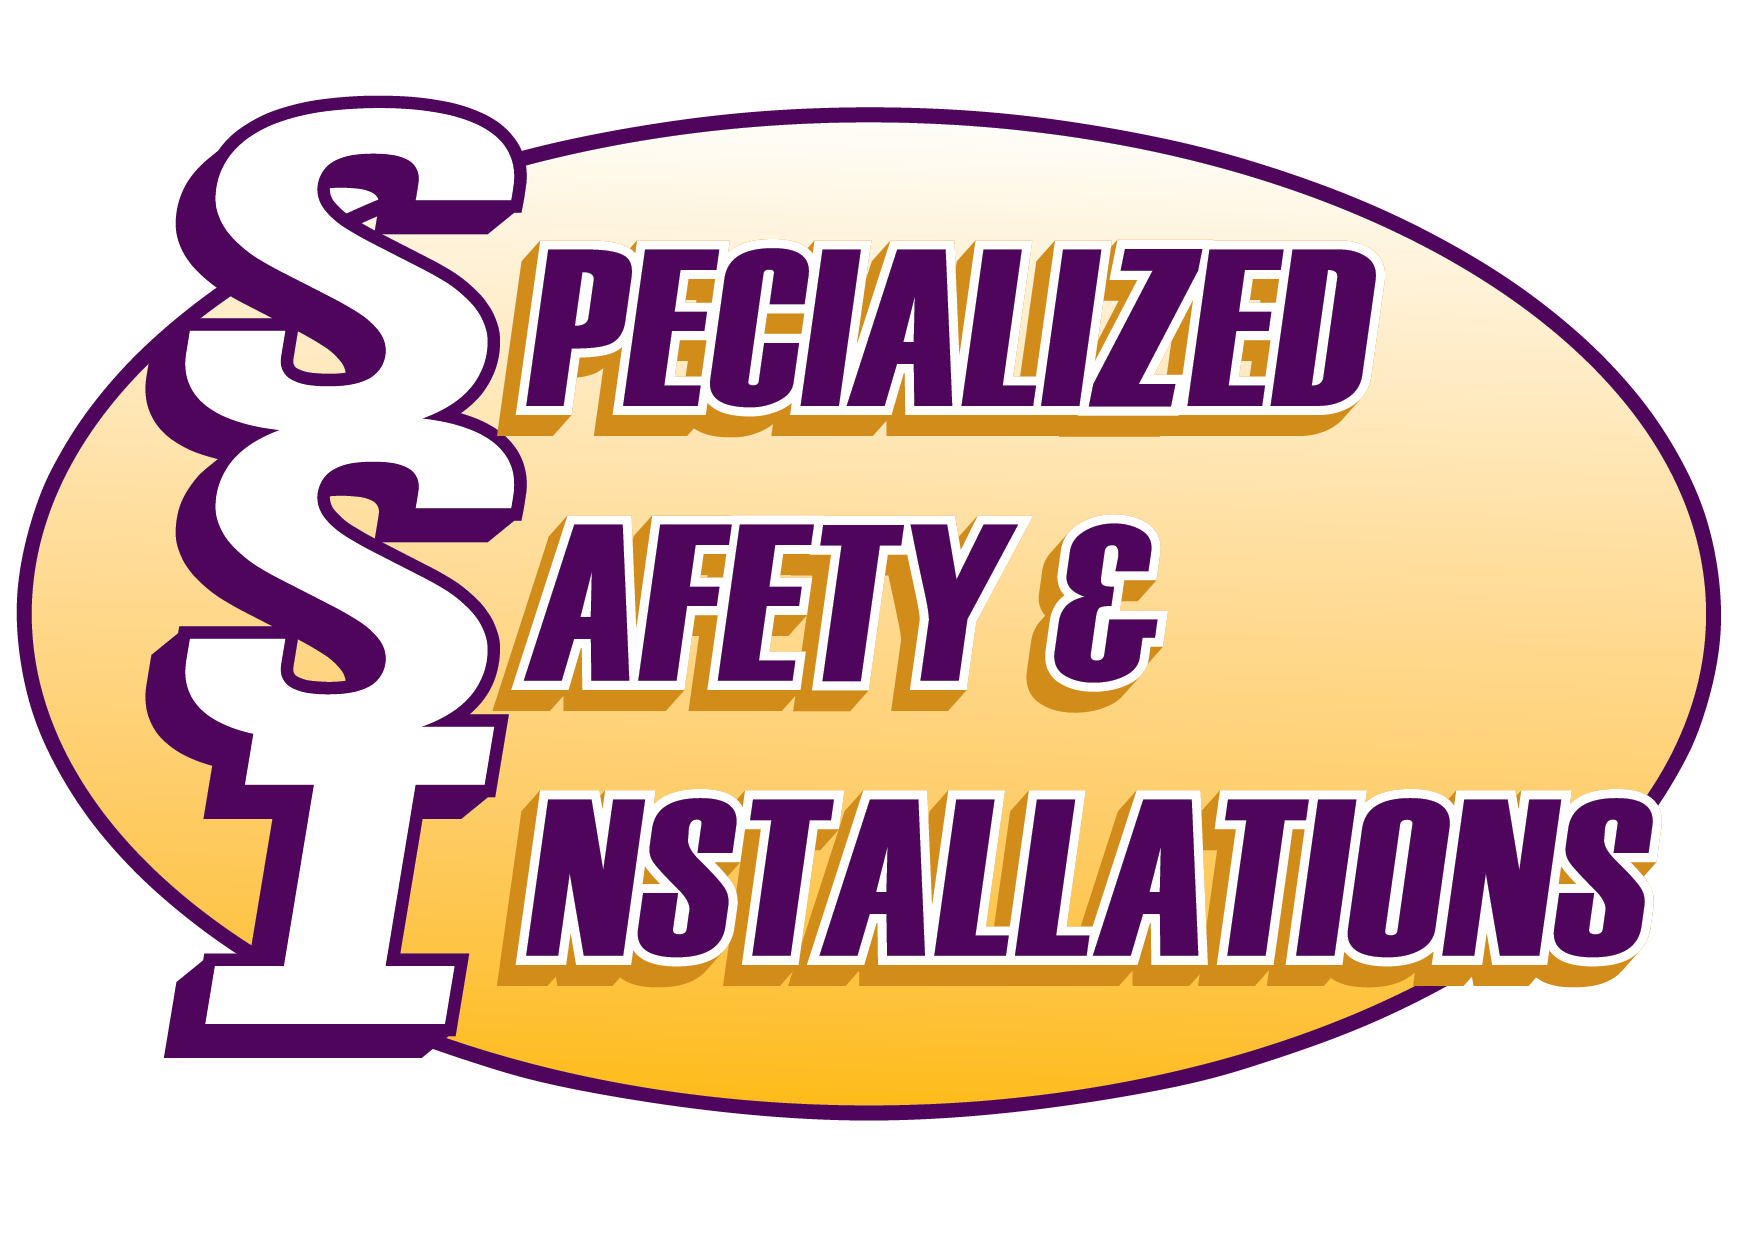 Specialized Safety & Installations